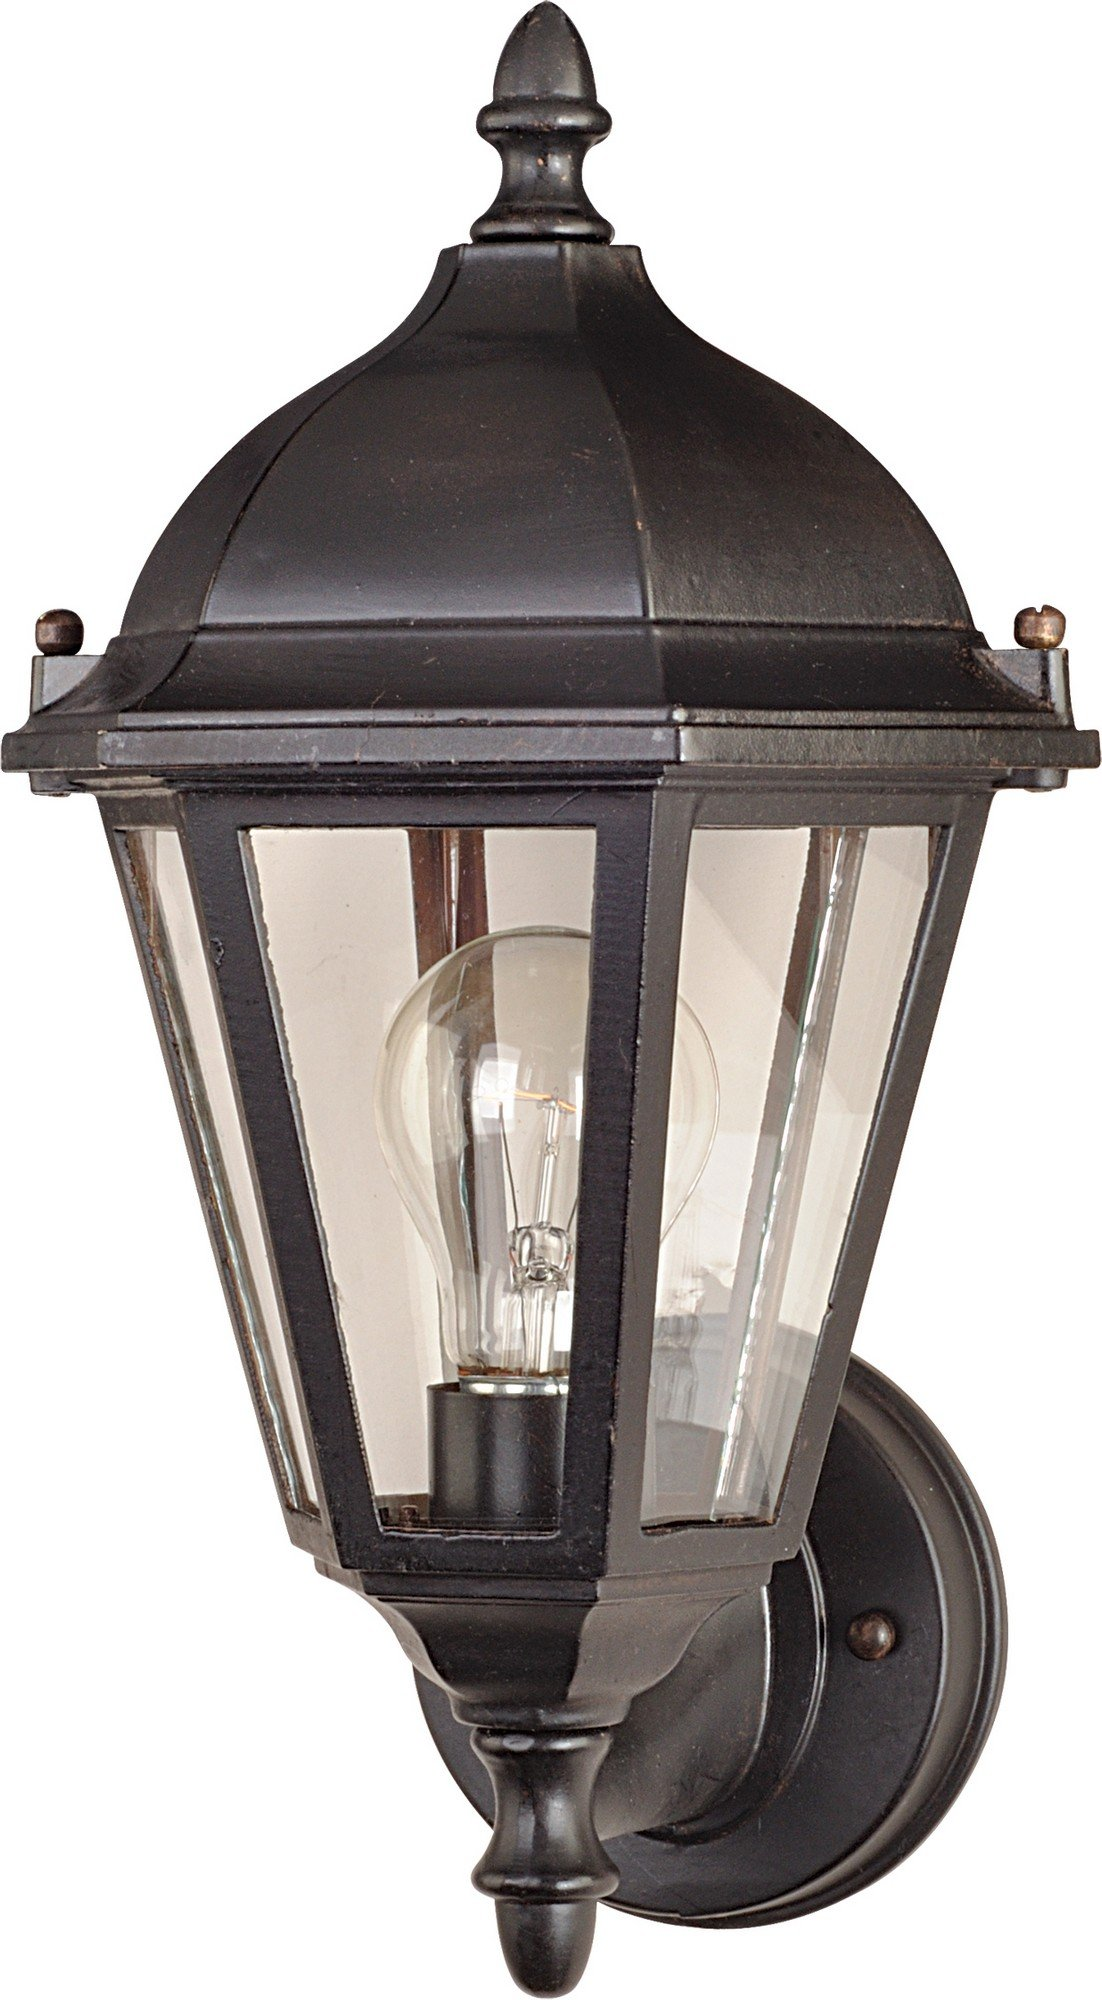 Maxim 1002EB Westlake Cast 1-Light Outdoor Wall Lantern, Empire Bronze Finish, Clear Glass, MB Incandescent Incandescent Bulb , 60W Max., Dry Safety Rating, Standard Dimmable, Glass Shade Material, 6048 Rated Lumens